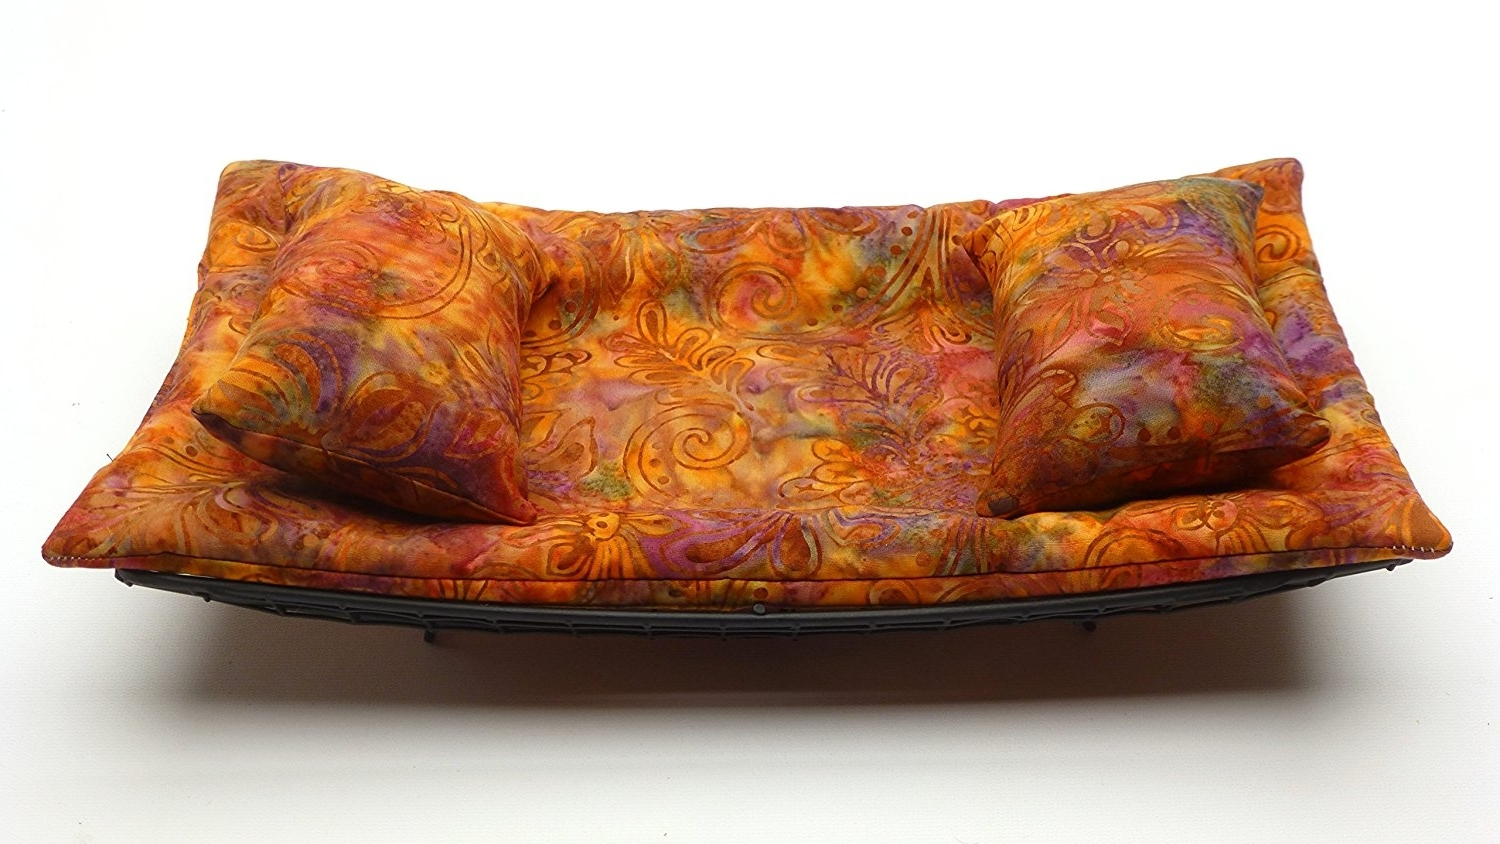 Carolina Designer Dragons Chaise Lounge For Bearded Dragons With Well Liked Orange Chaise Lounges (View 10 of 15)